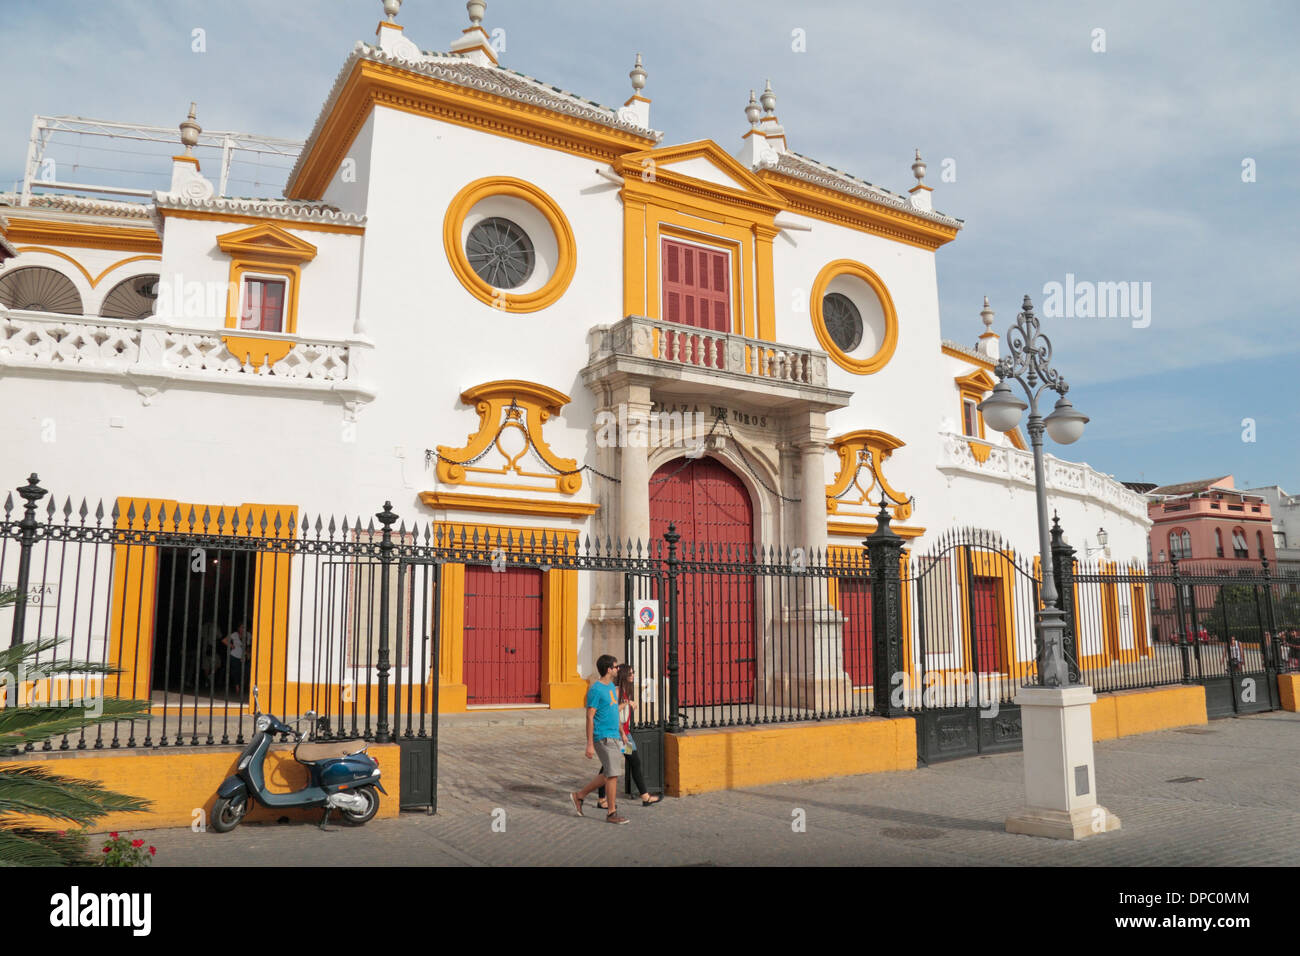 External view of Plaza de Toros de la Real Maestranza de Caballería de Sevilla (bull ring), in Seville, Andalusia, Spain. - Stock Image